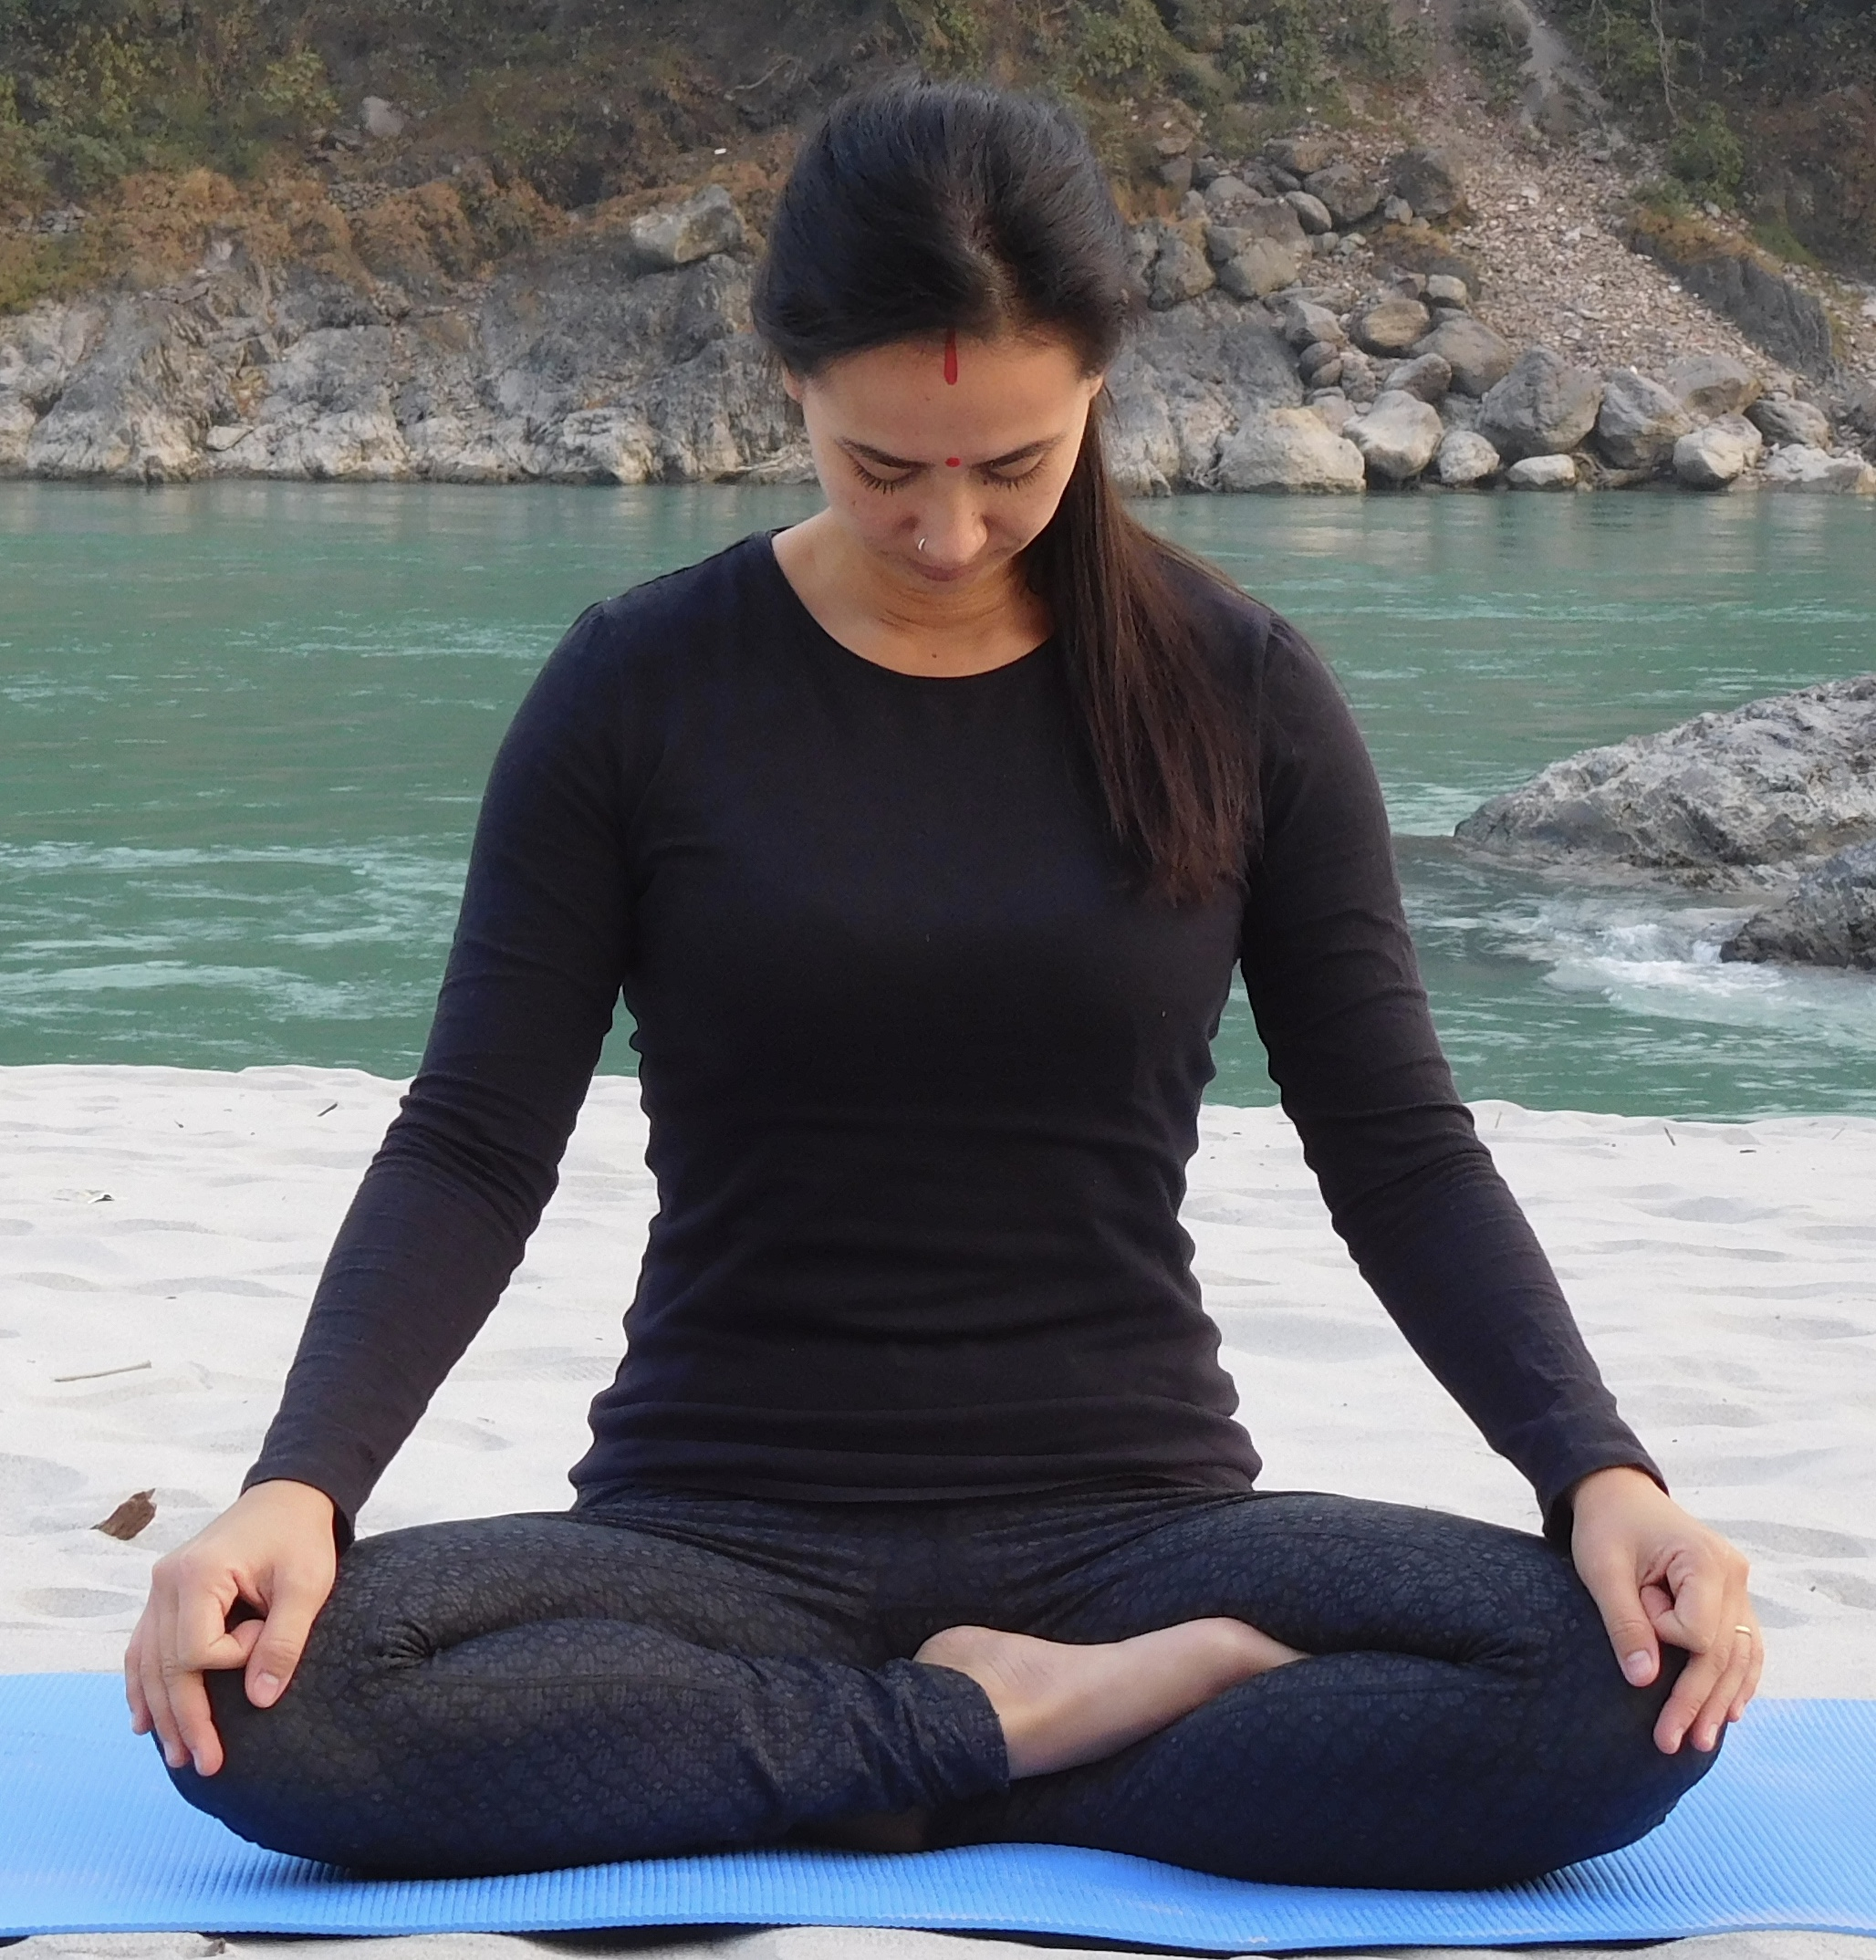 Siddhasana - The pose of perfection.